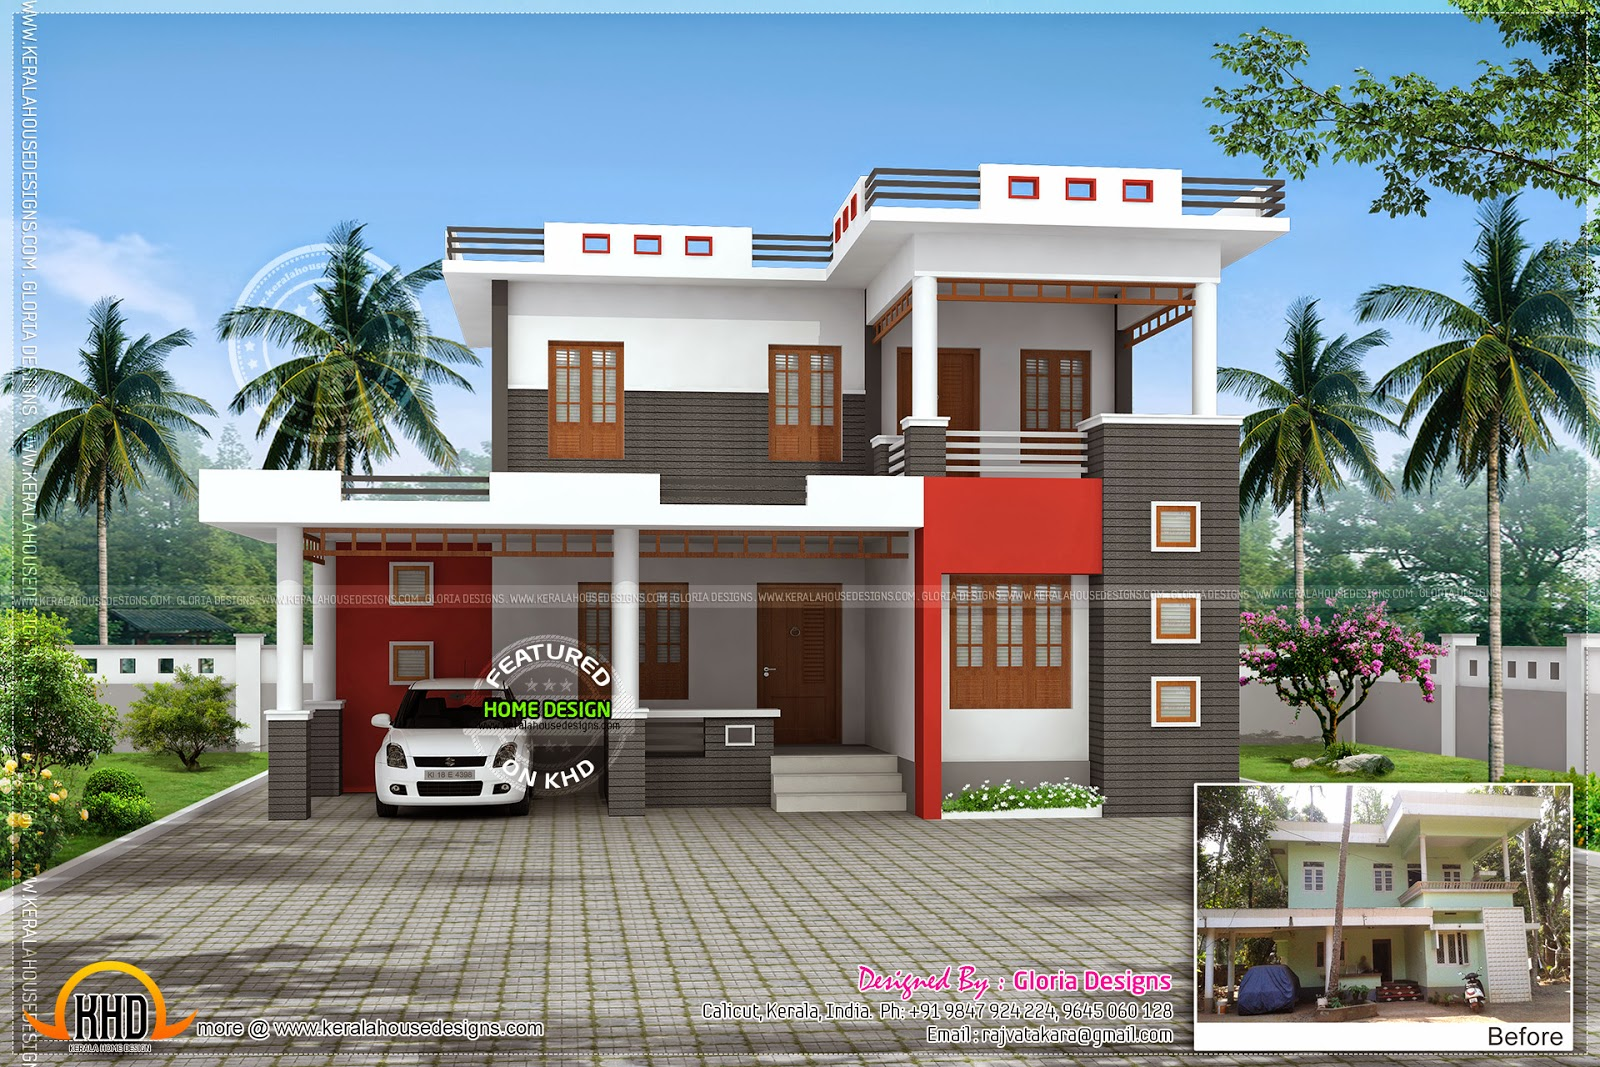 Renovation 3d model for an old house kerala home design 3d model house design